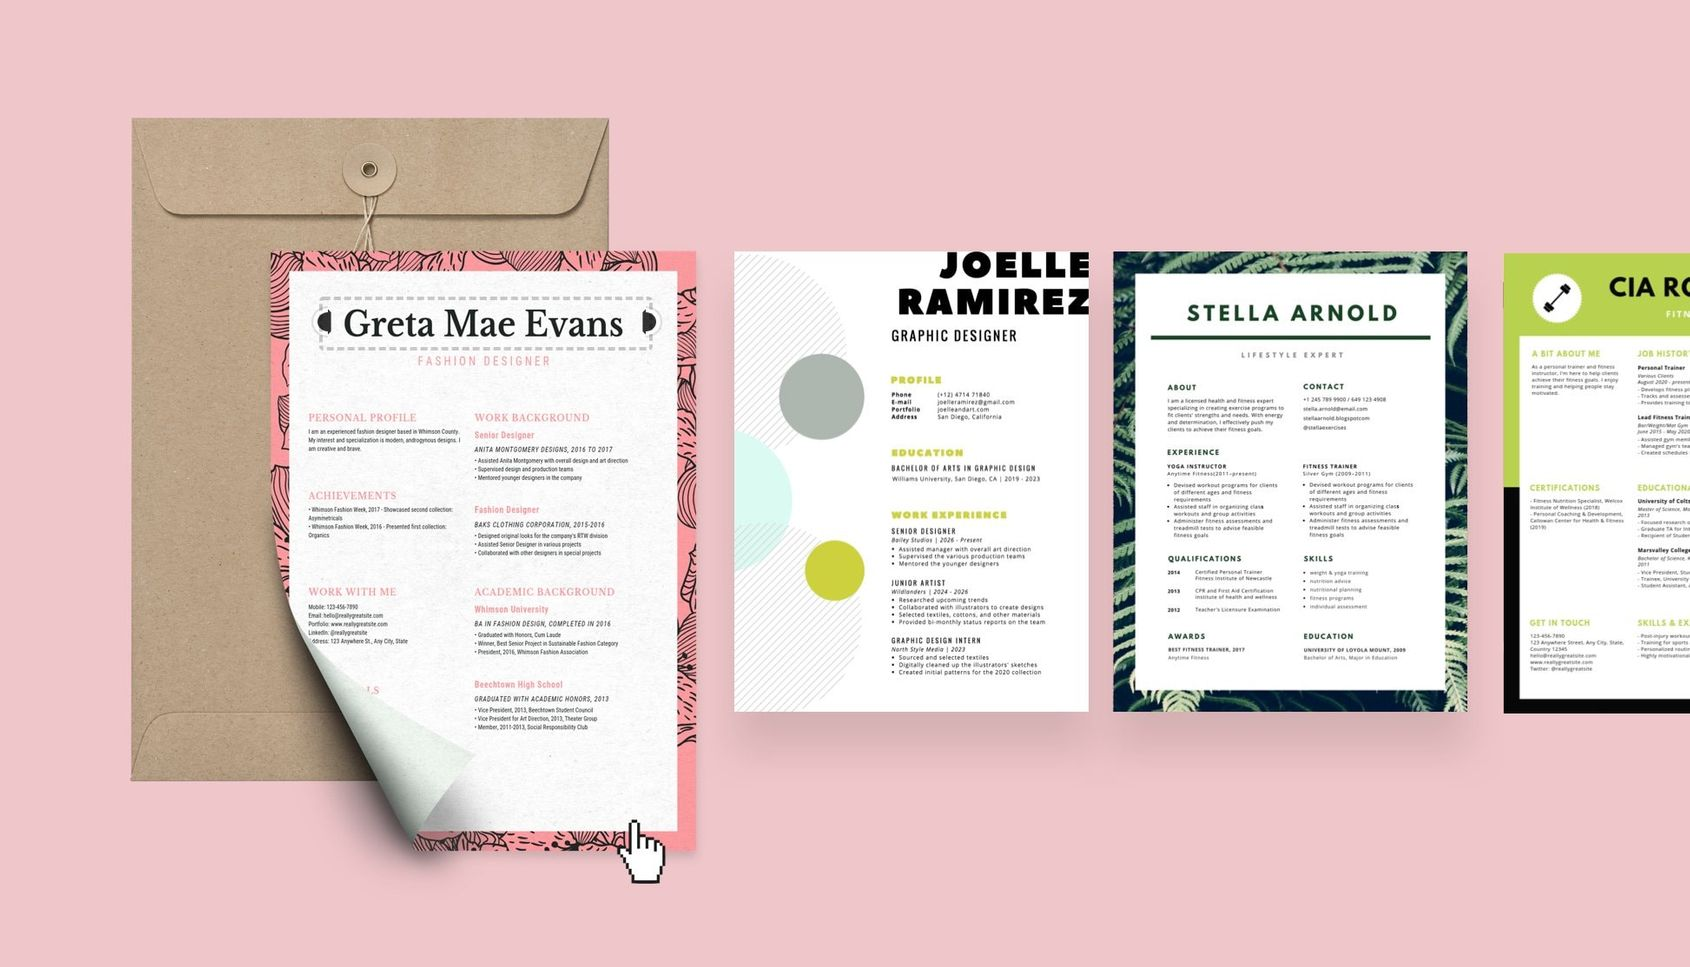 free resume builder design custom in canva make professional payroll clerk duties and Resume Make Professional Resume Online Free